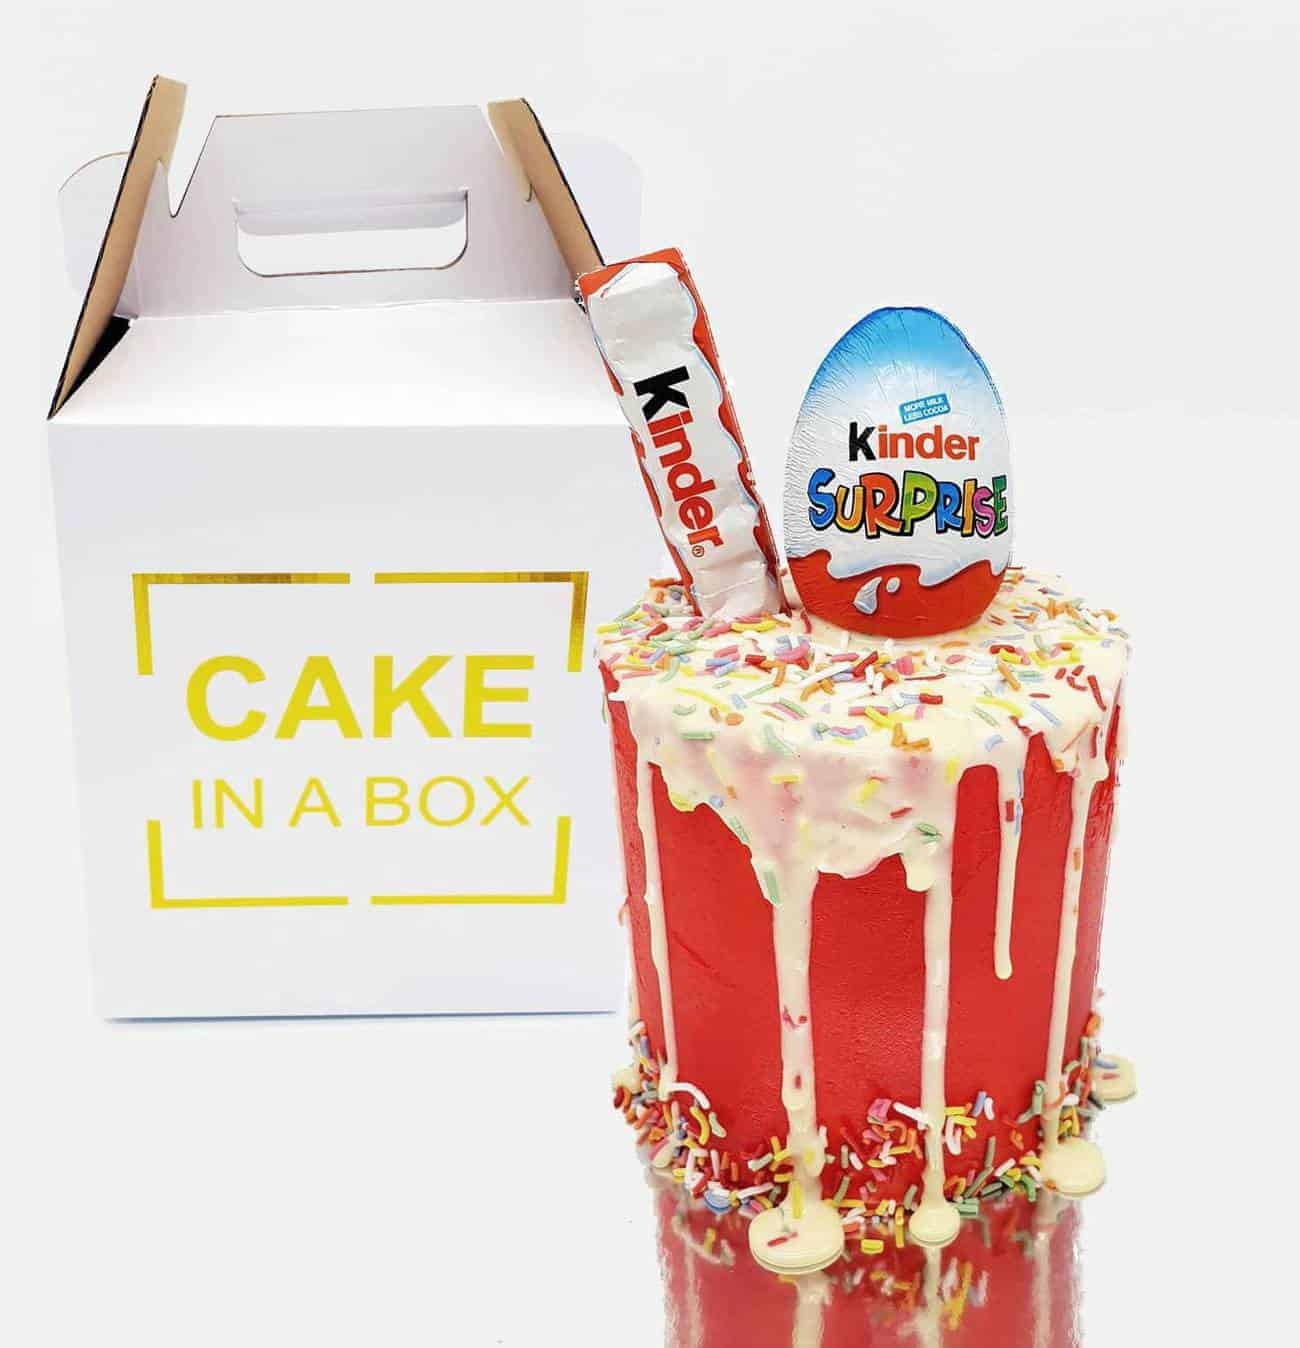 Remarkable Cake In A Box Cake Delivery Sydney Cake Shop Birthday Cake Funny Birthday Cards Online Elaedamsfinfo